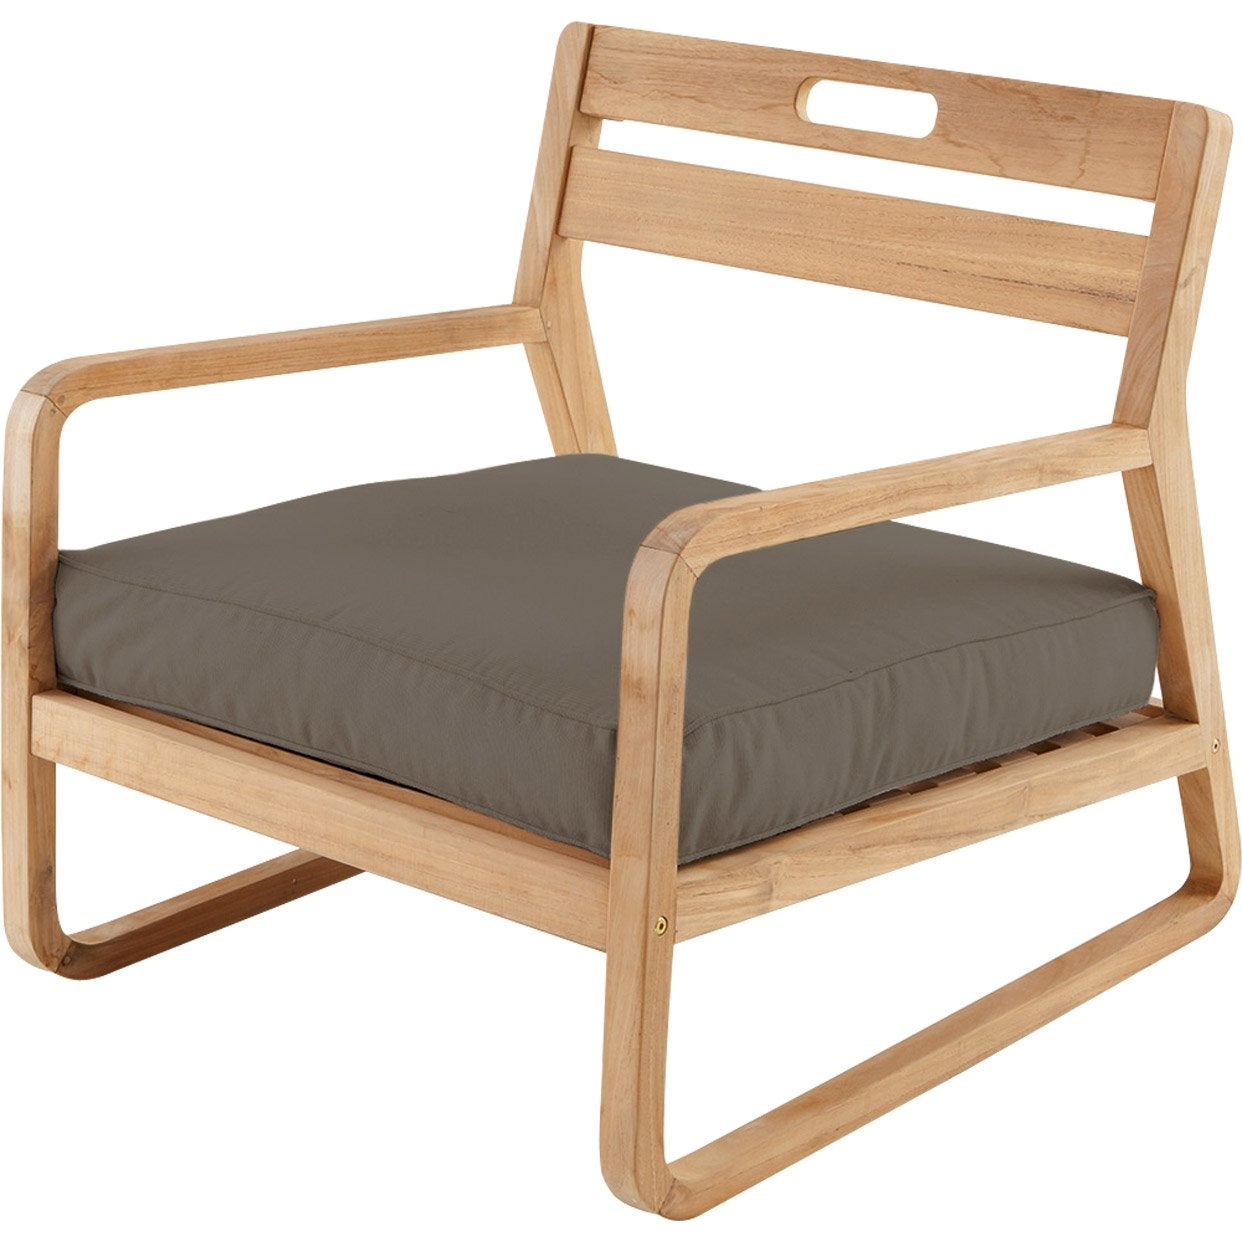 Chaise basse de jardin en bois resort naturel leroy merlin - Chaise basse de salon ...